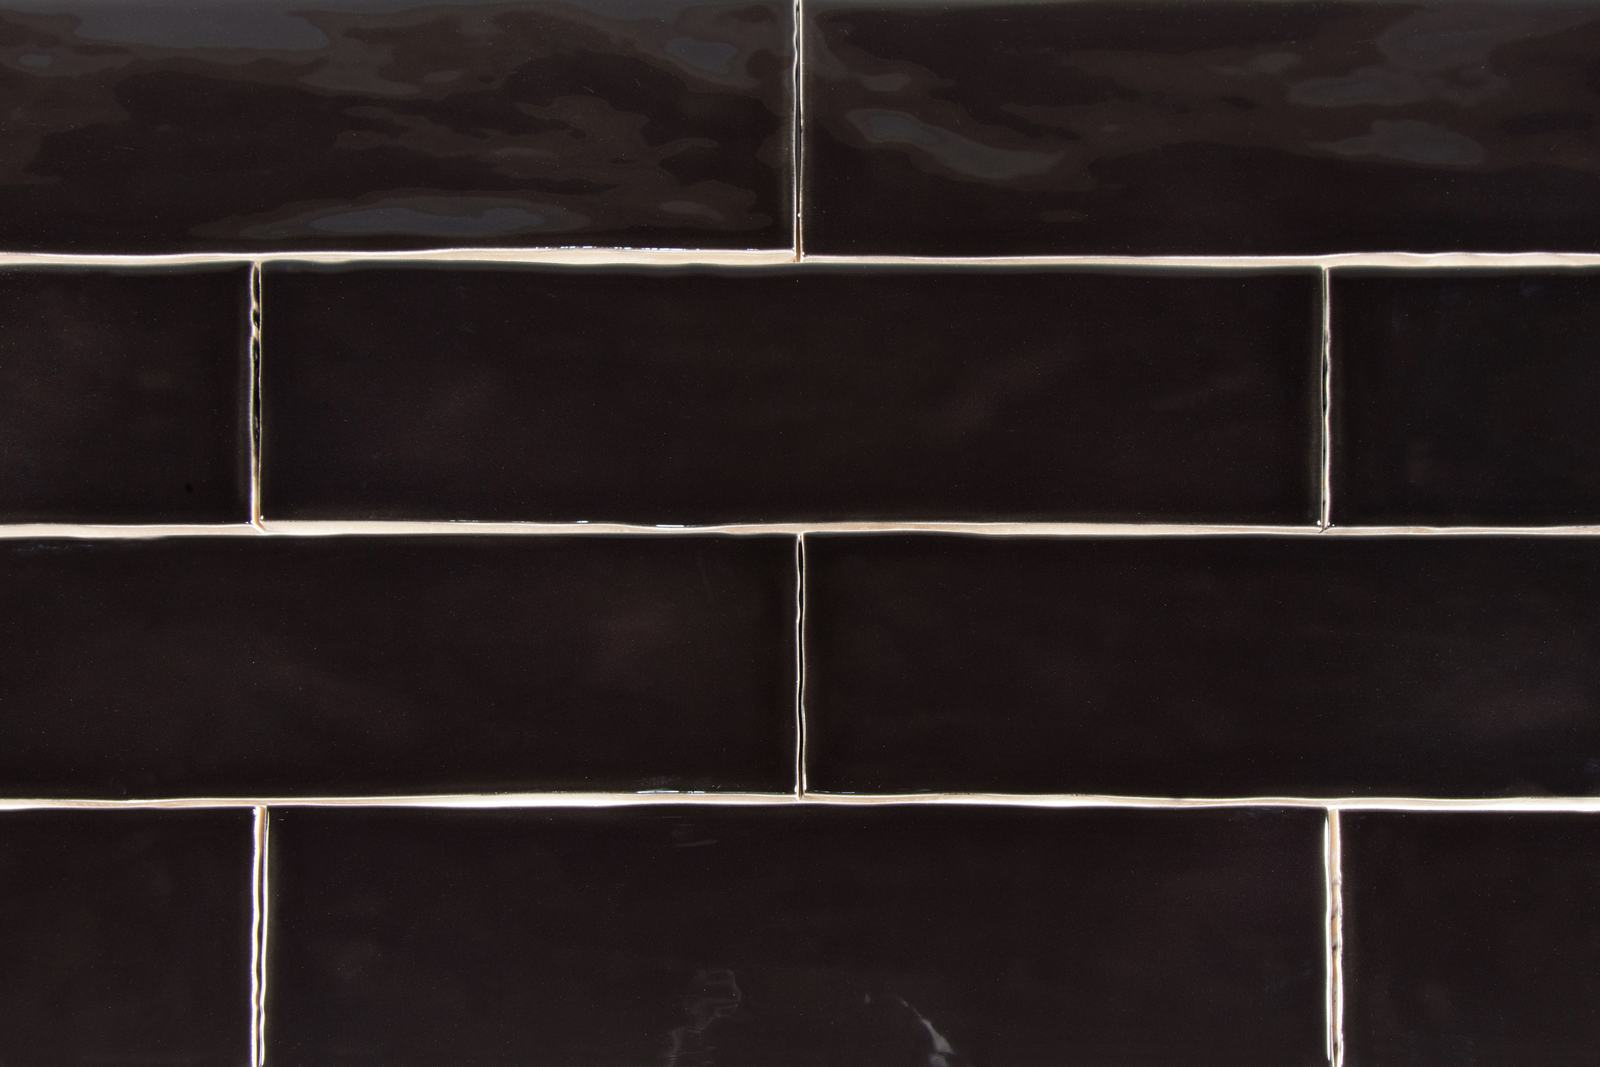 Lusso 3 x 12 nero handmade look polished subway tile storka lusso in color nero dailygadgetfo Choice Image